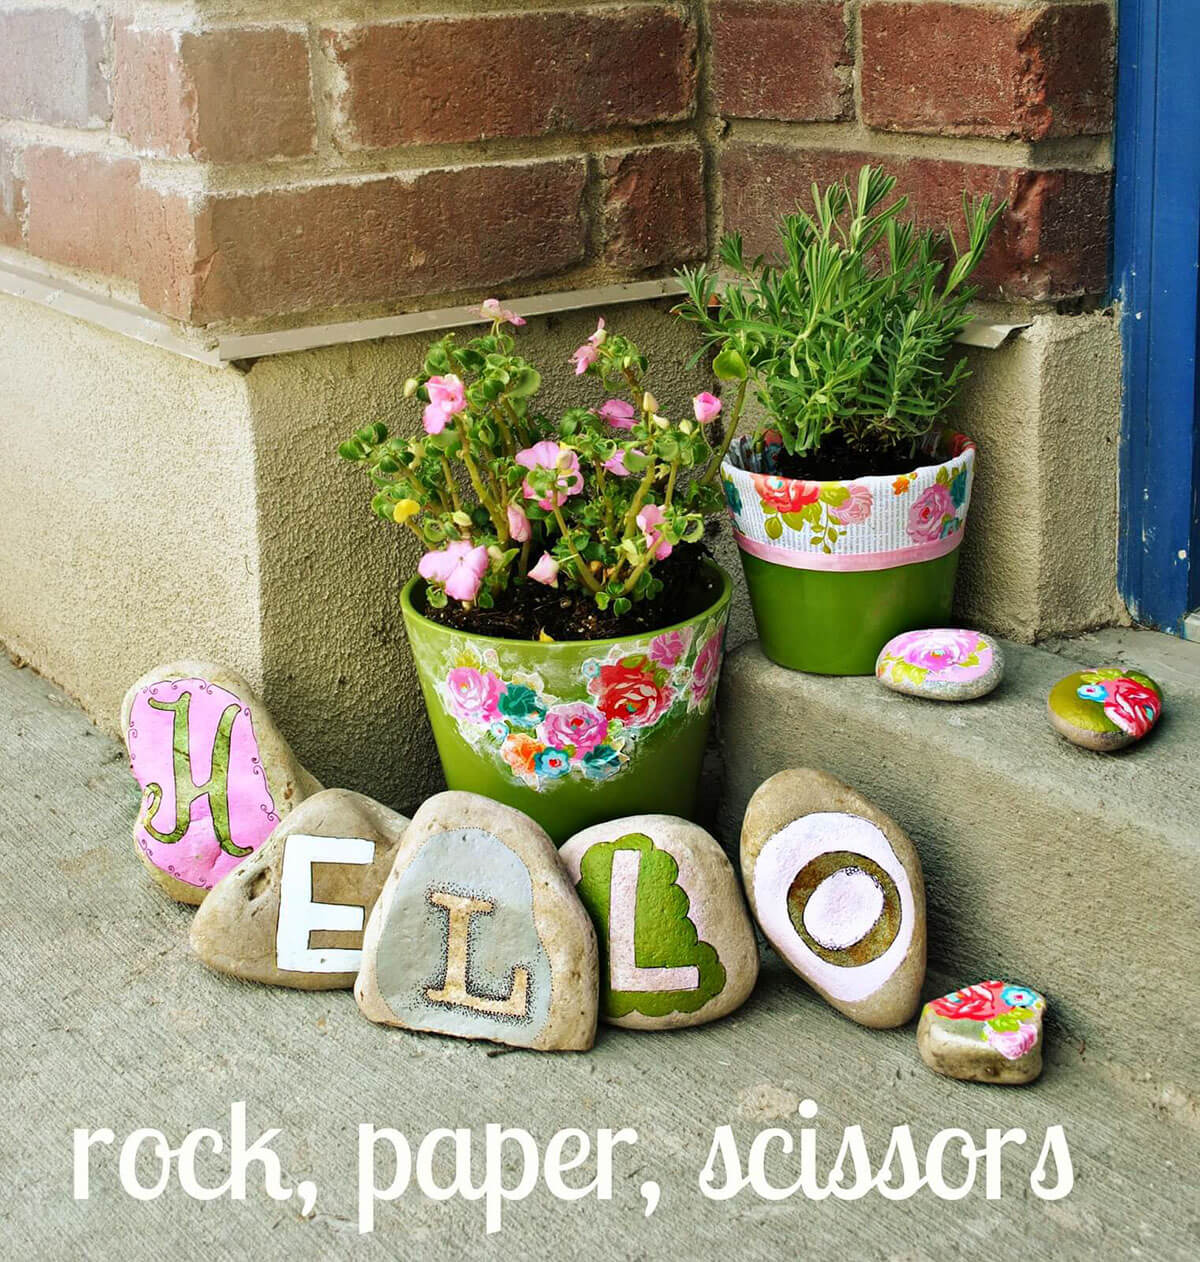 Welcome Your Guests with a Painted Stone Message